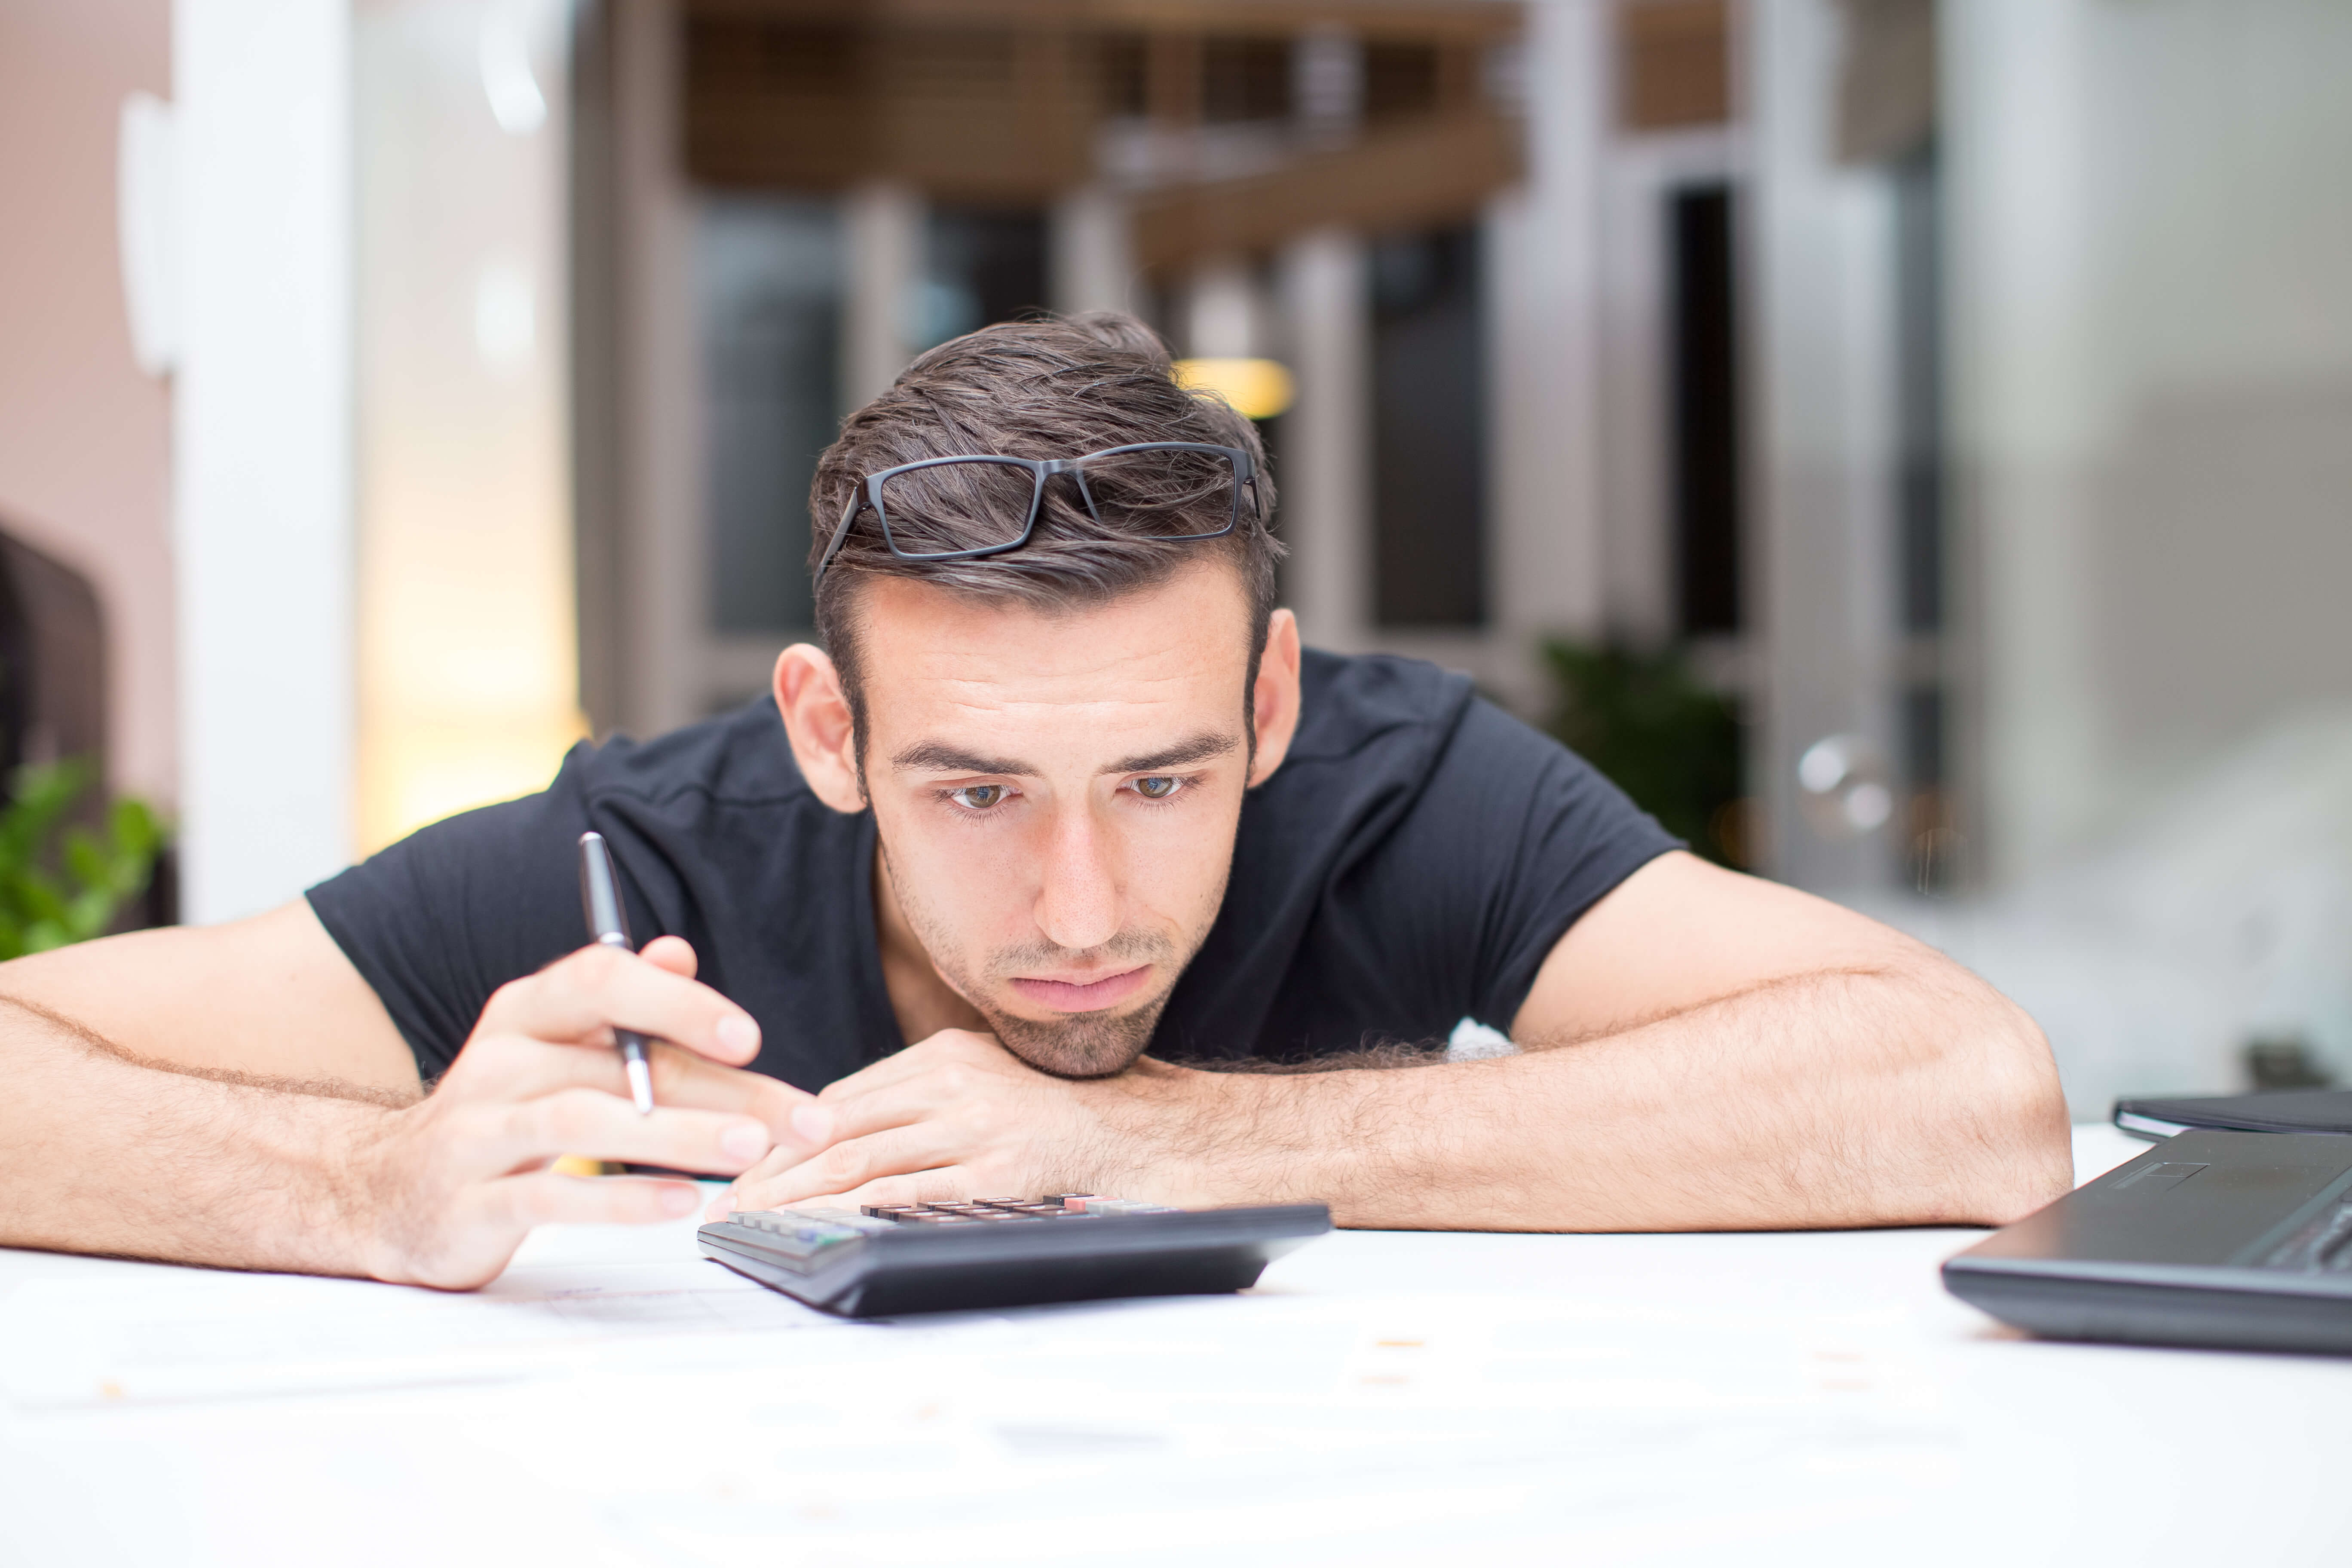 Closeup portrait of tired young handsome man lying on table with calculator in office